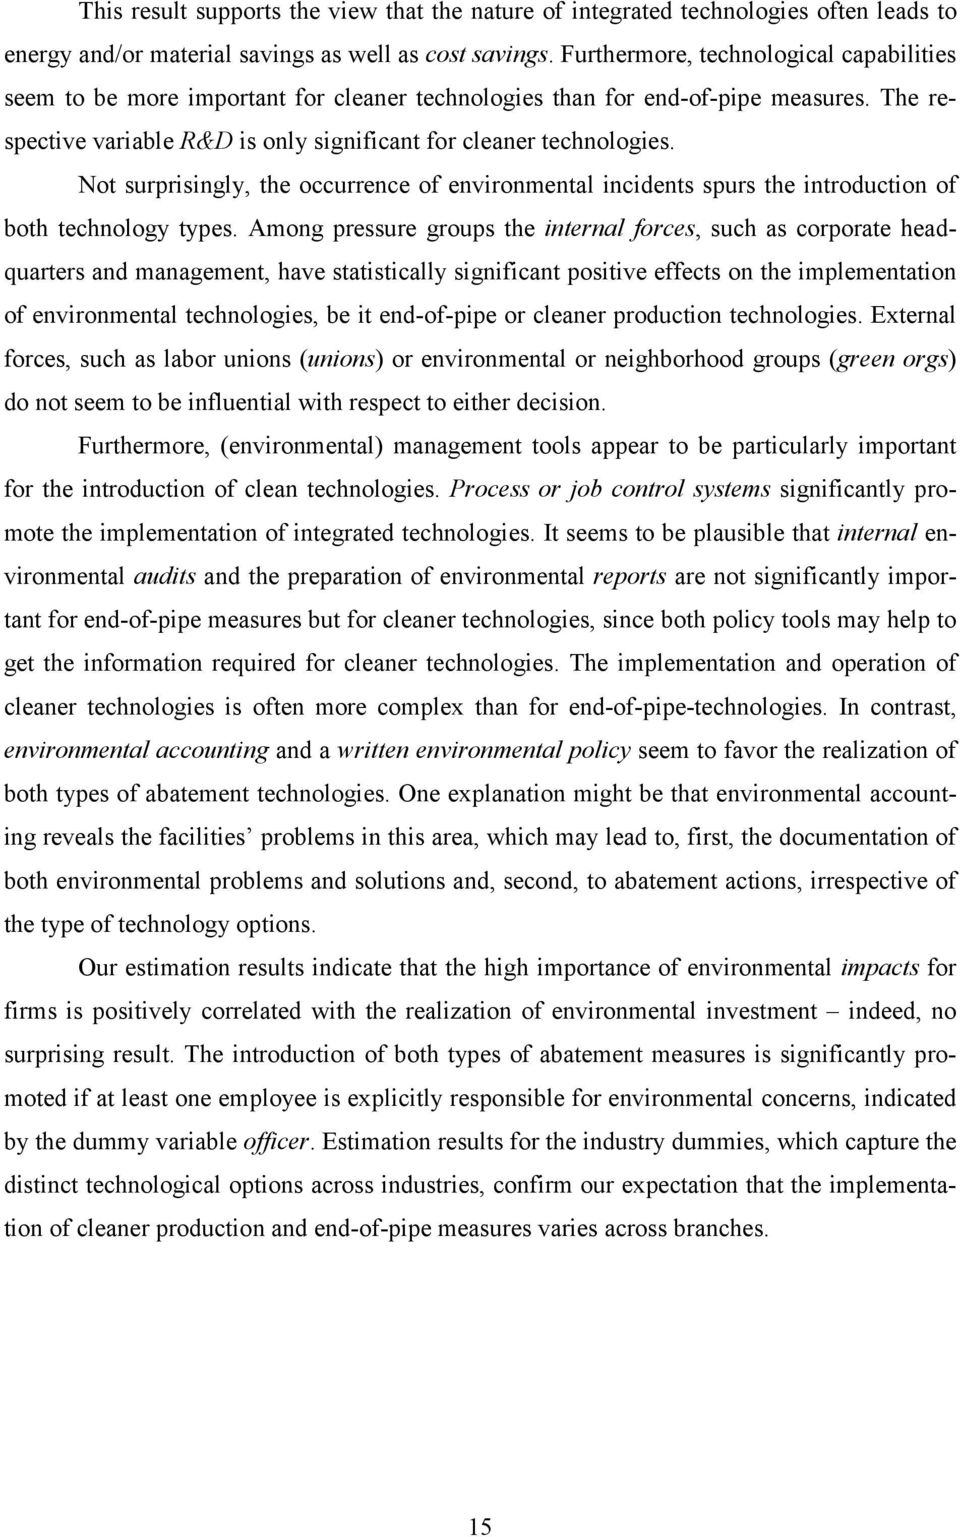 Not surprisingly, the occurrence of environmental incidents spurs the introduction of both technology types.